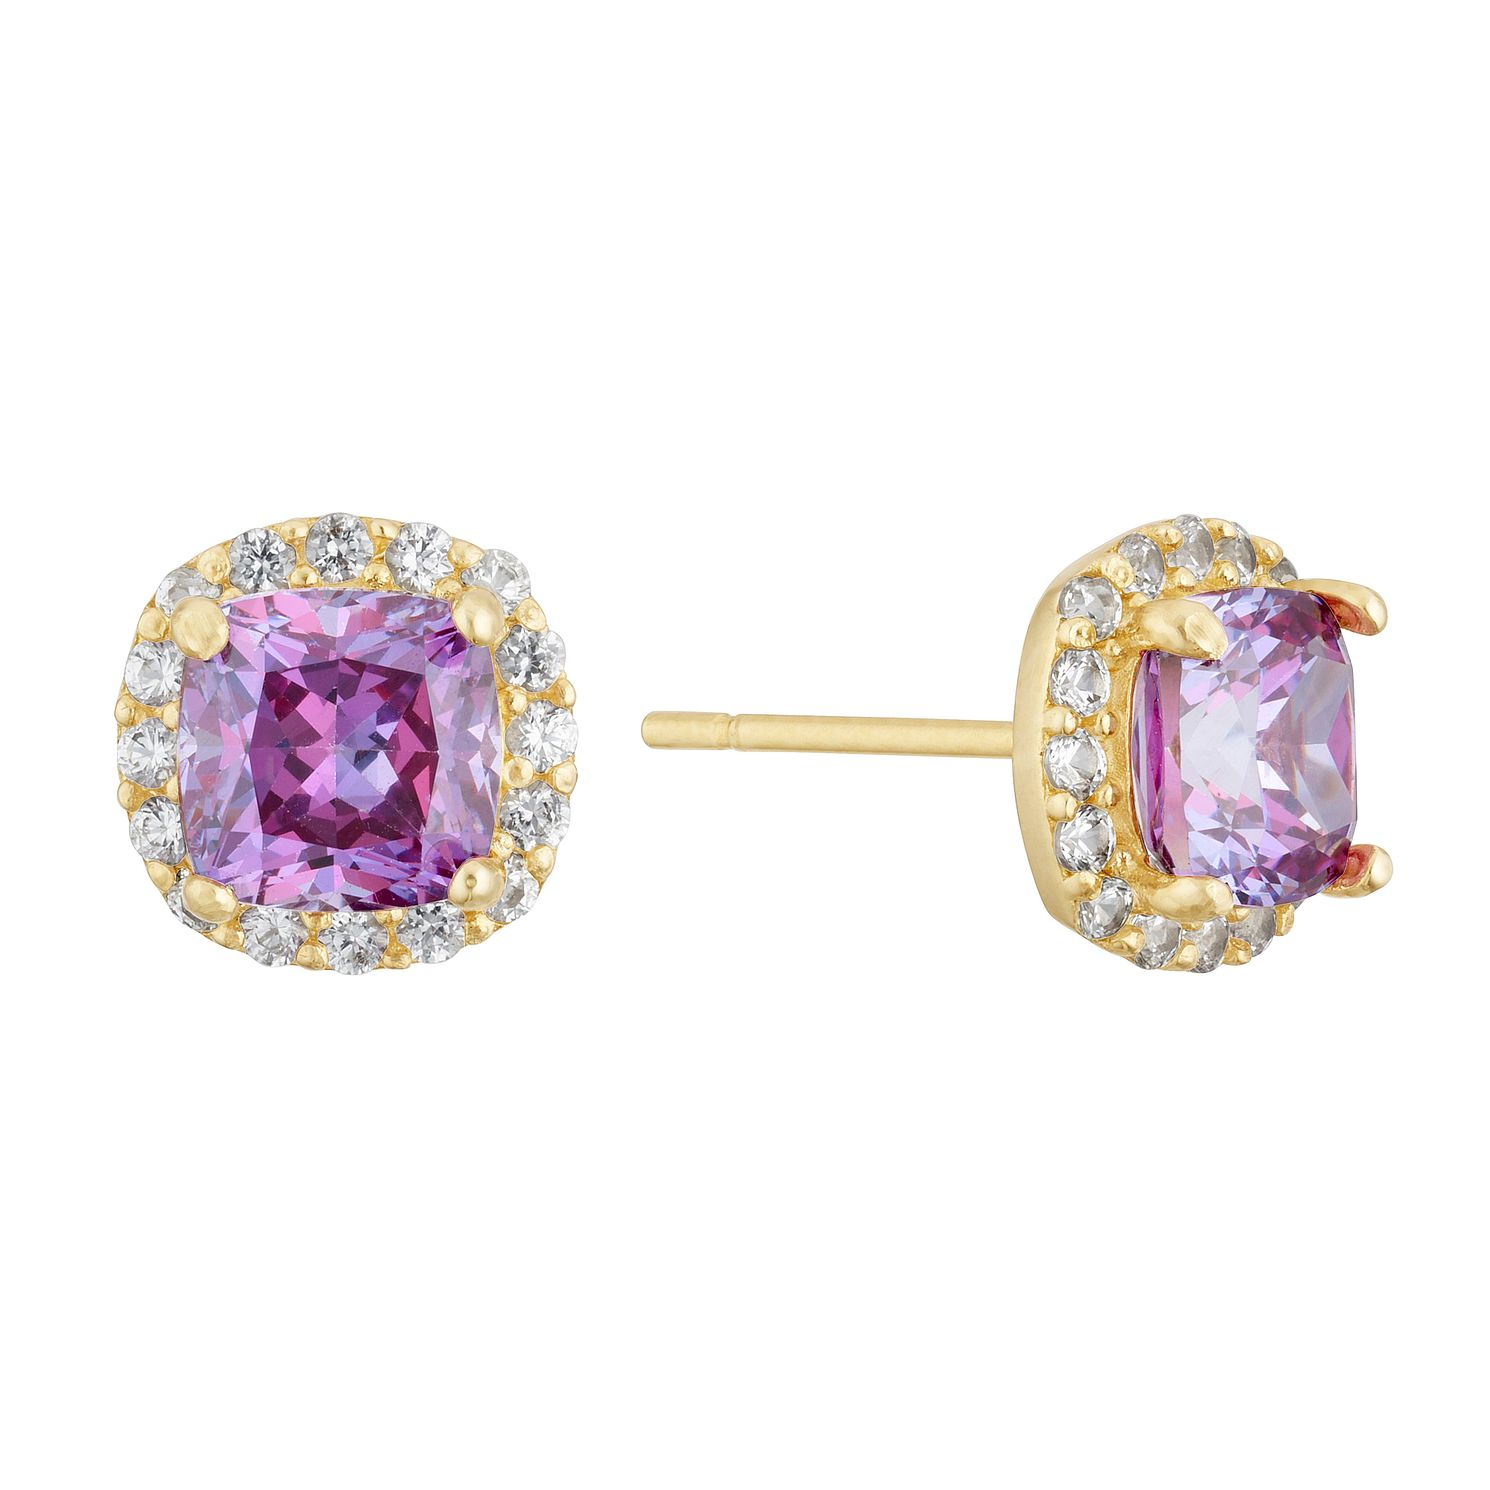 9ct Yellow Gold Purple Cubic Zirconia Square Halo Earrings - Product number 3129136